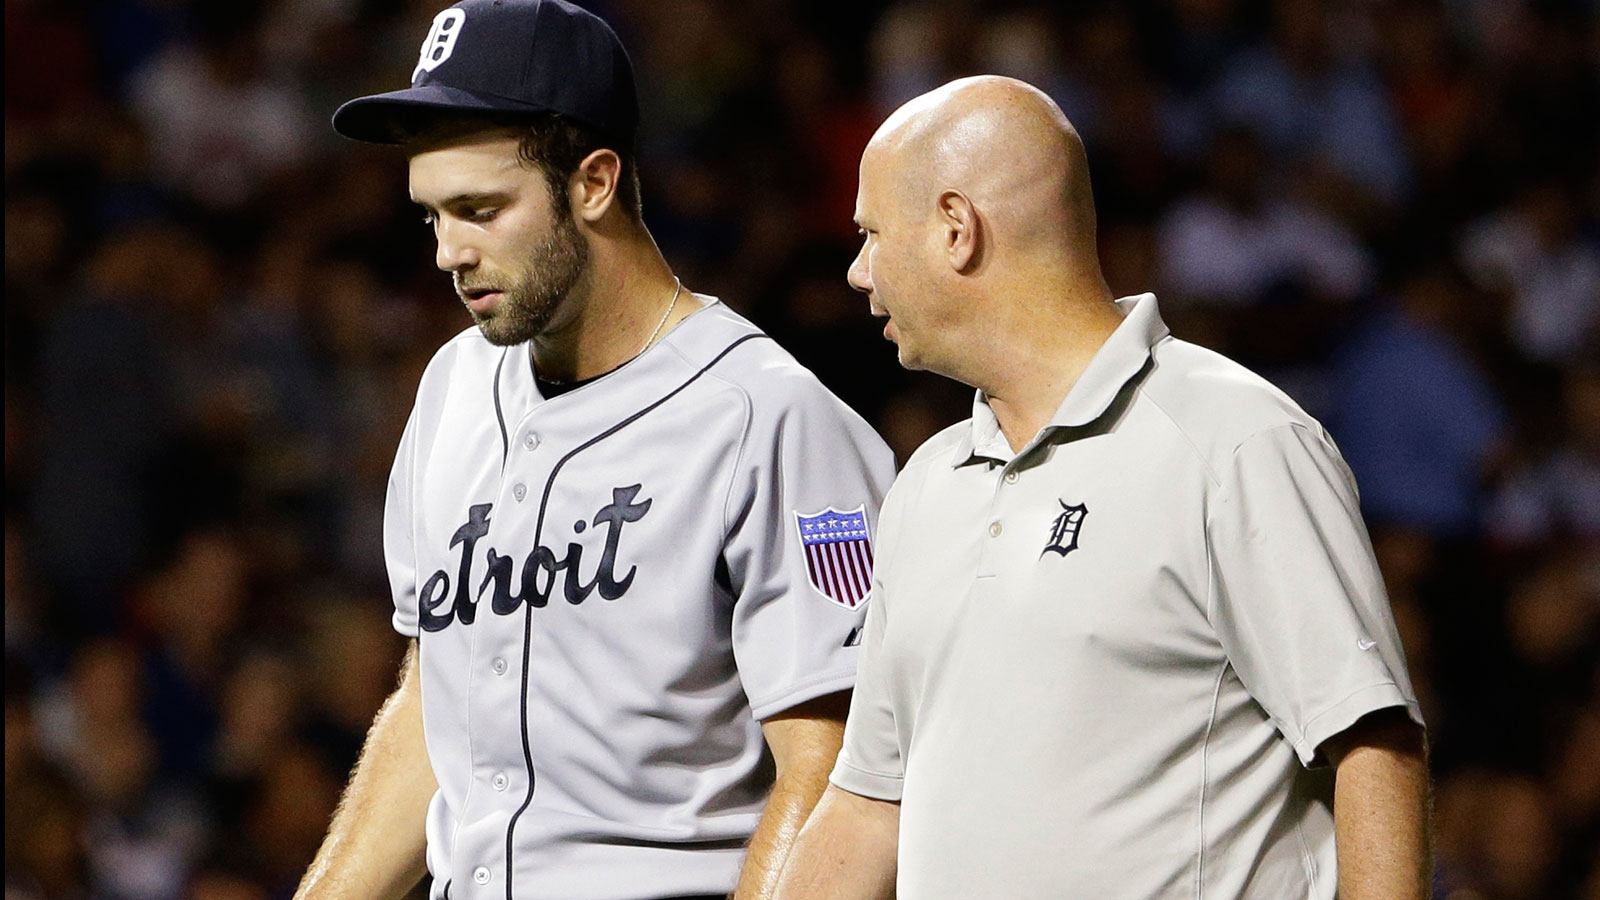 Norris homers, suffers injury; Tigers pound Cubs 15-8